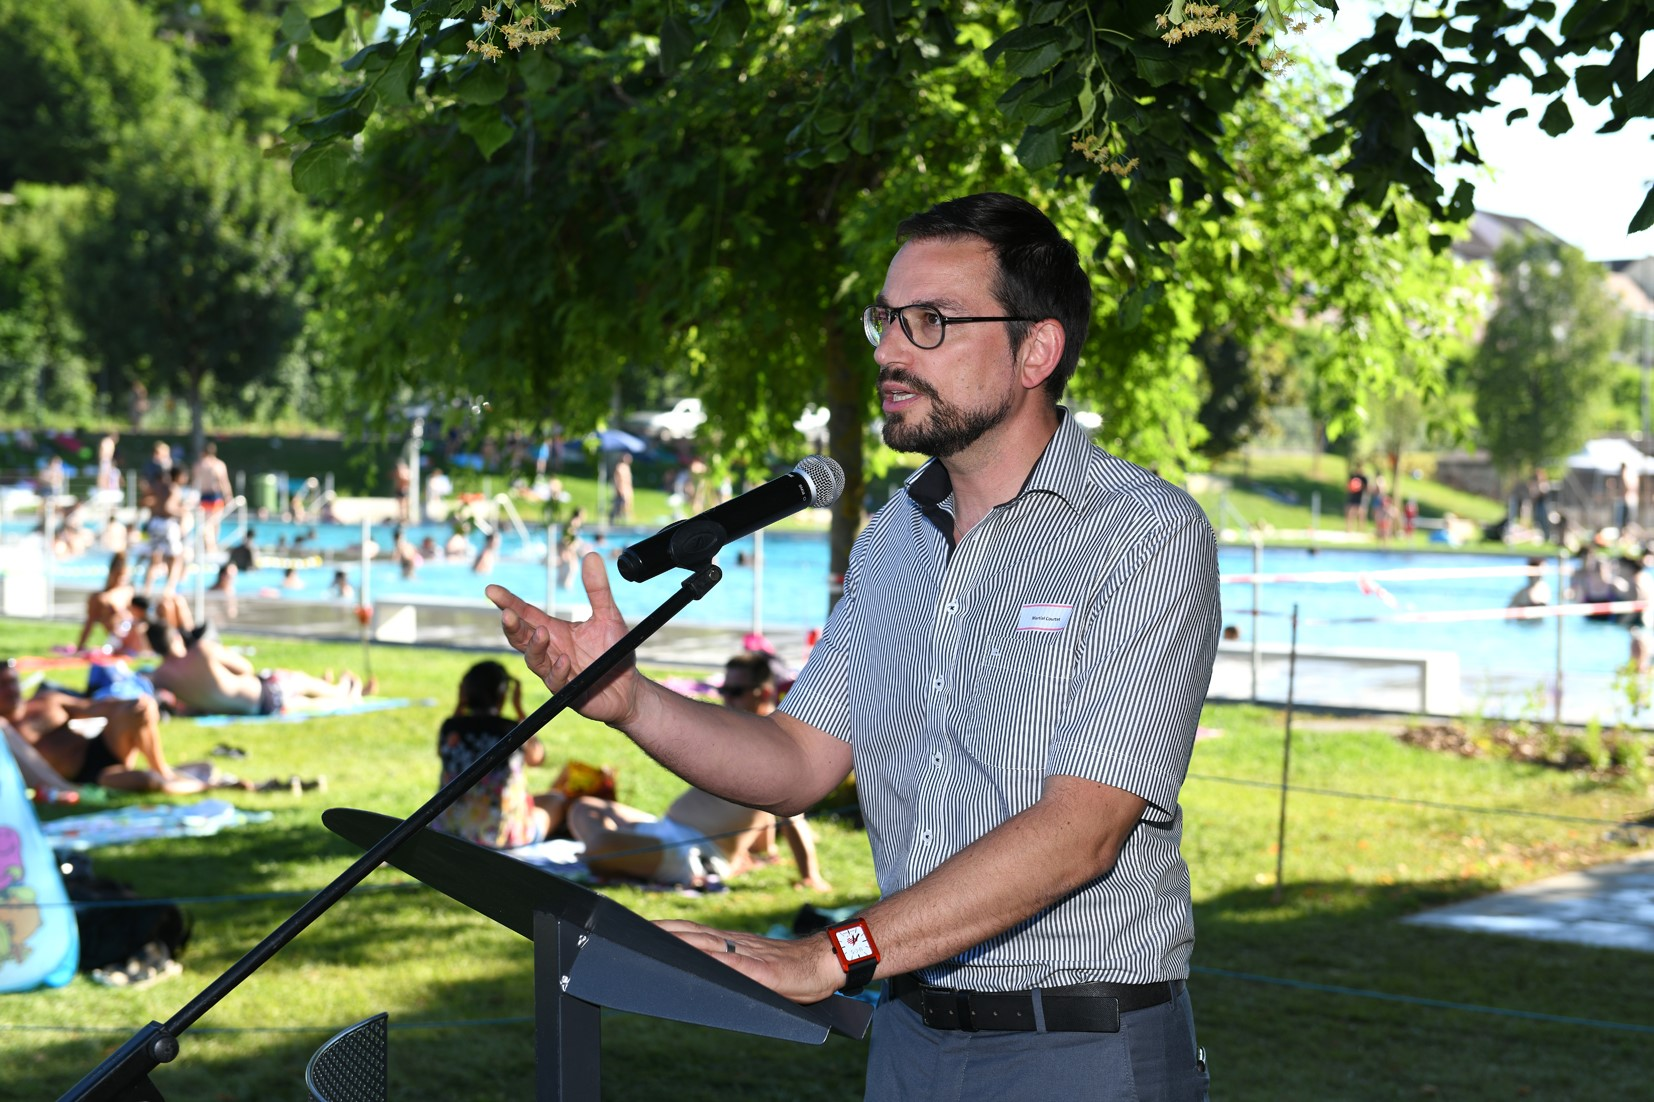 Piscine-municipale-inauguration-10